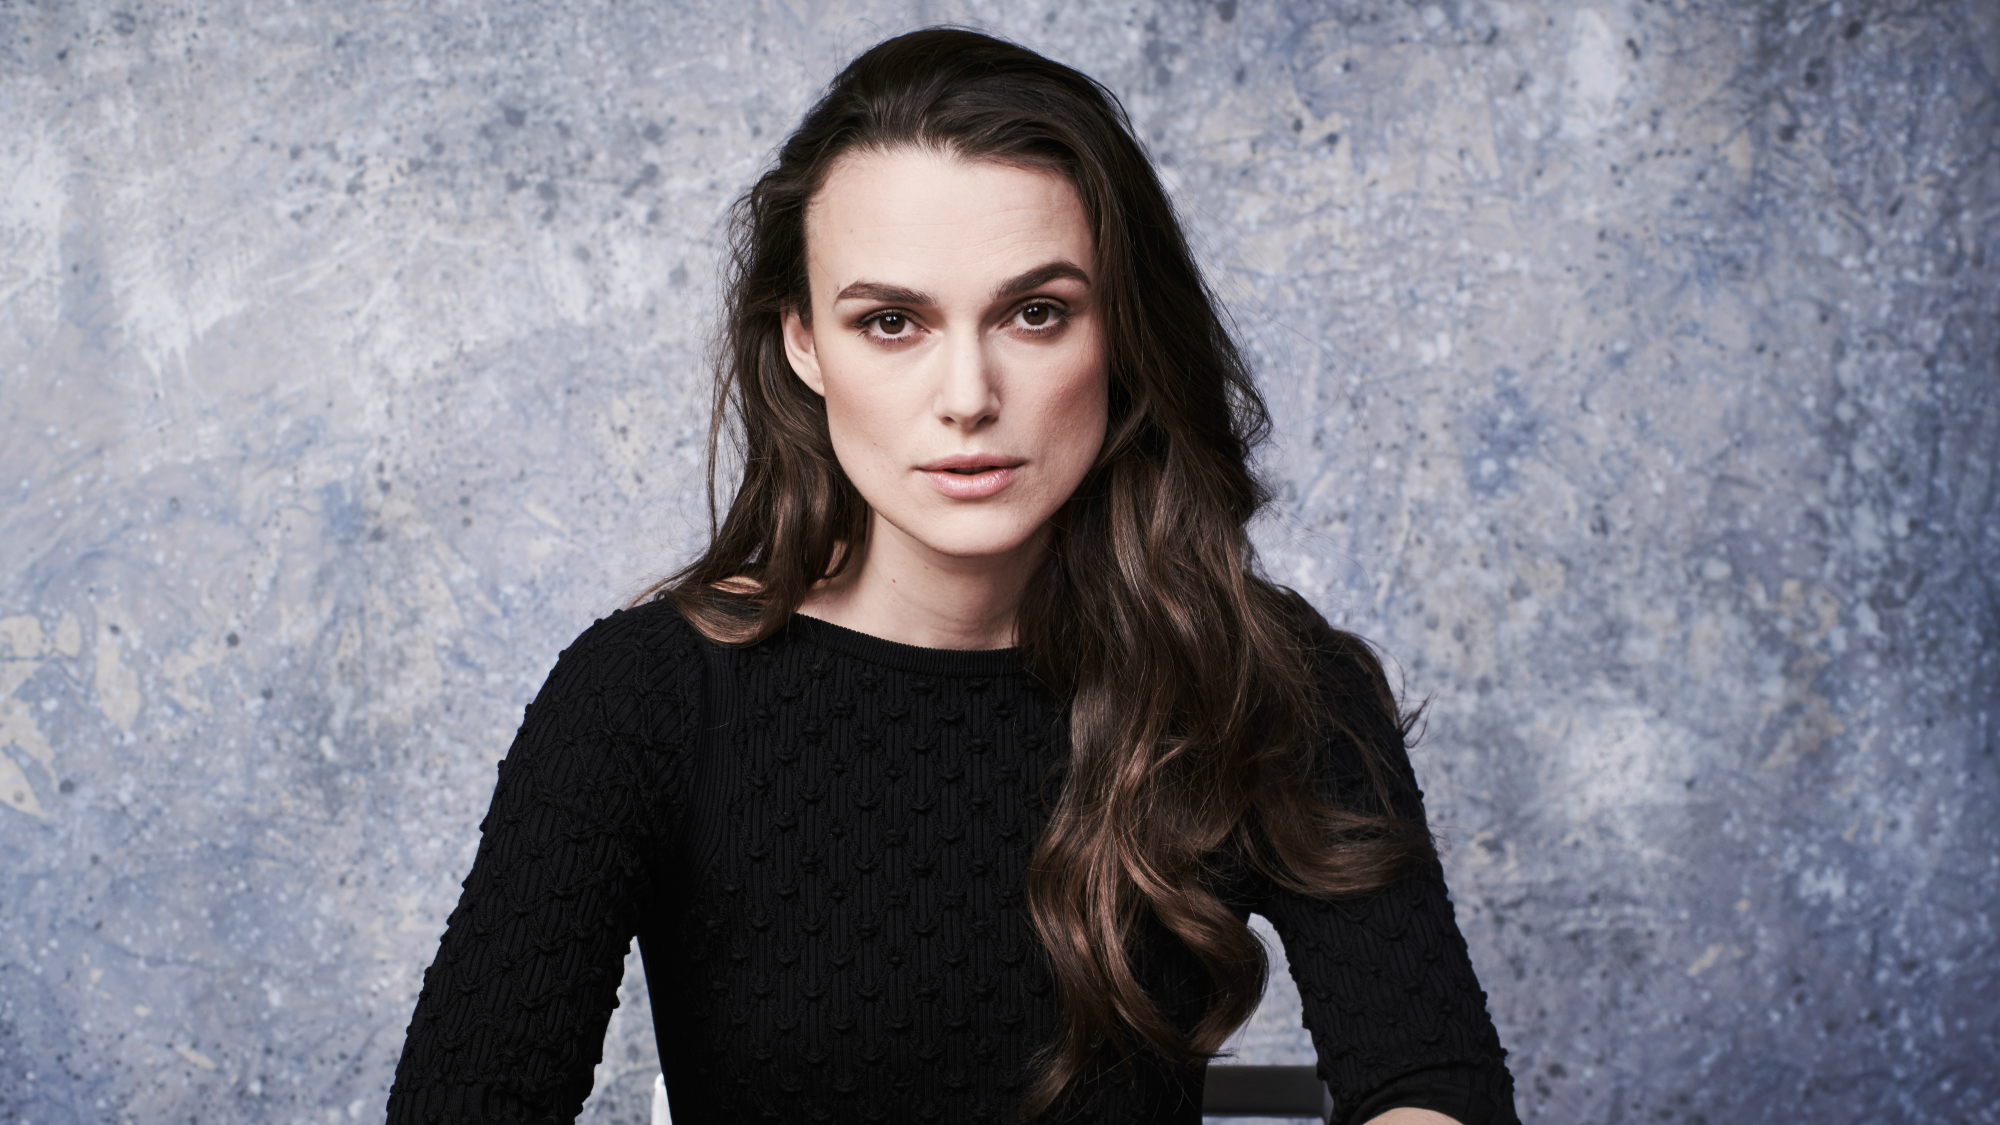 Keira-Knightley-Height-Weight-Age-Bra-Size-Affairs-Body-Stats